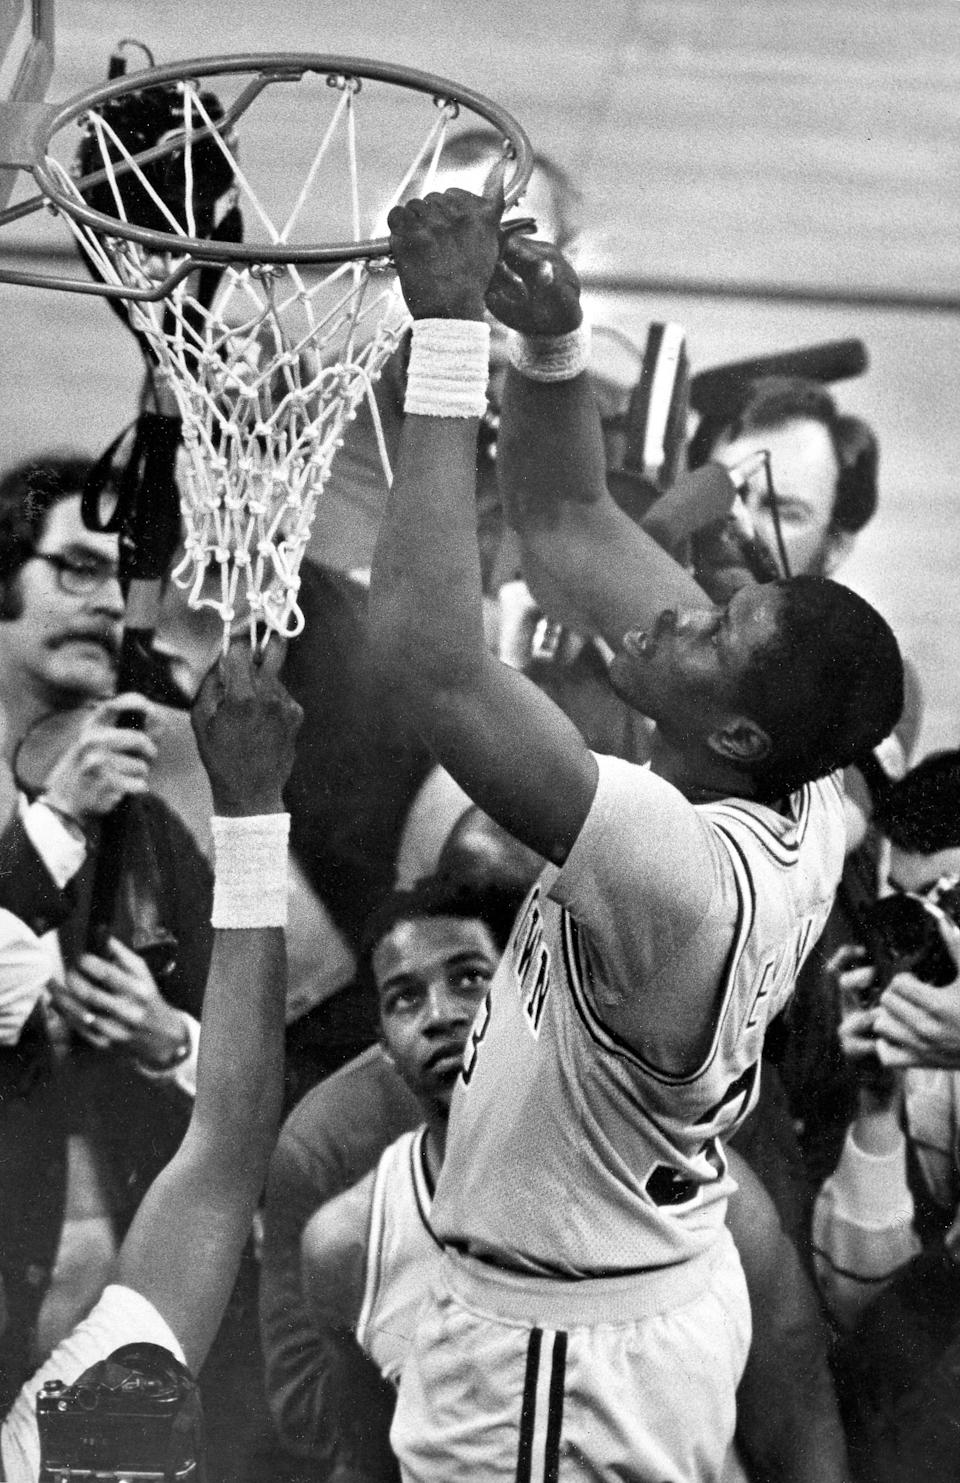 FILE - Georgetown's Patrick Ewing cuts his share of the net after Georgetown beat Houston for the NCAA college basketball national championship in Seattle, in this April 3, 1984, file photo. Patrick Ewing and Georgetown are back in the NCAA Tournament. The 7-footer who helped the Hoyas win one national championship and reach two other finals in the 1980s is now coaching at his alma mater. Georgetown is a No. 12 seed and will play No. 5 Colorado in the East Region on Saturday, March 20, 2021. (AP Photo/File)